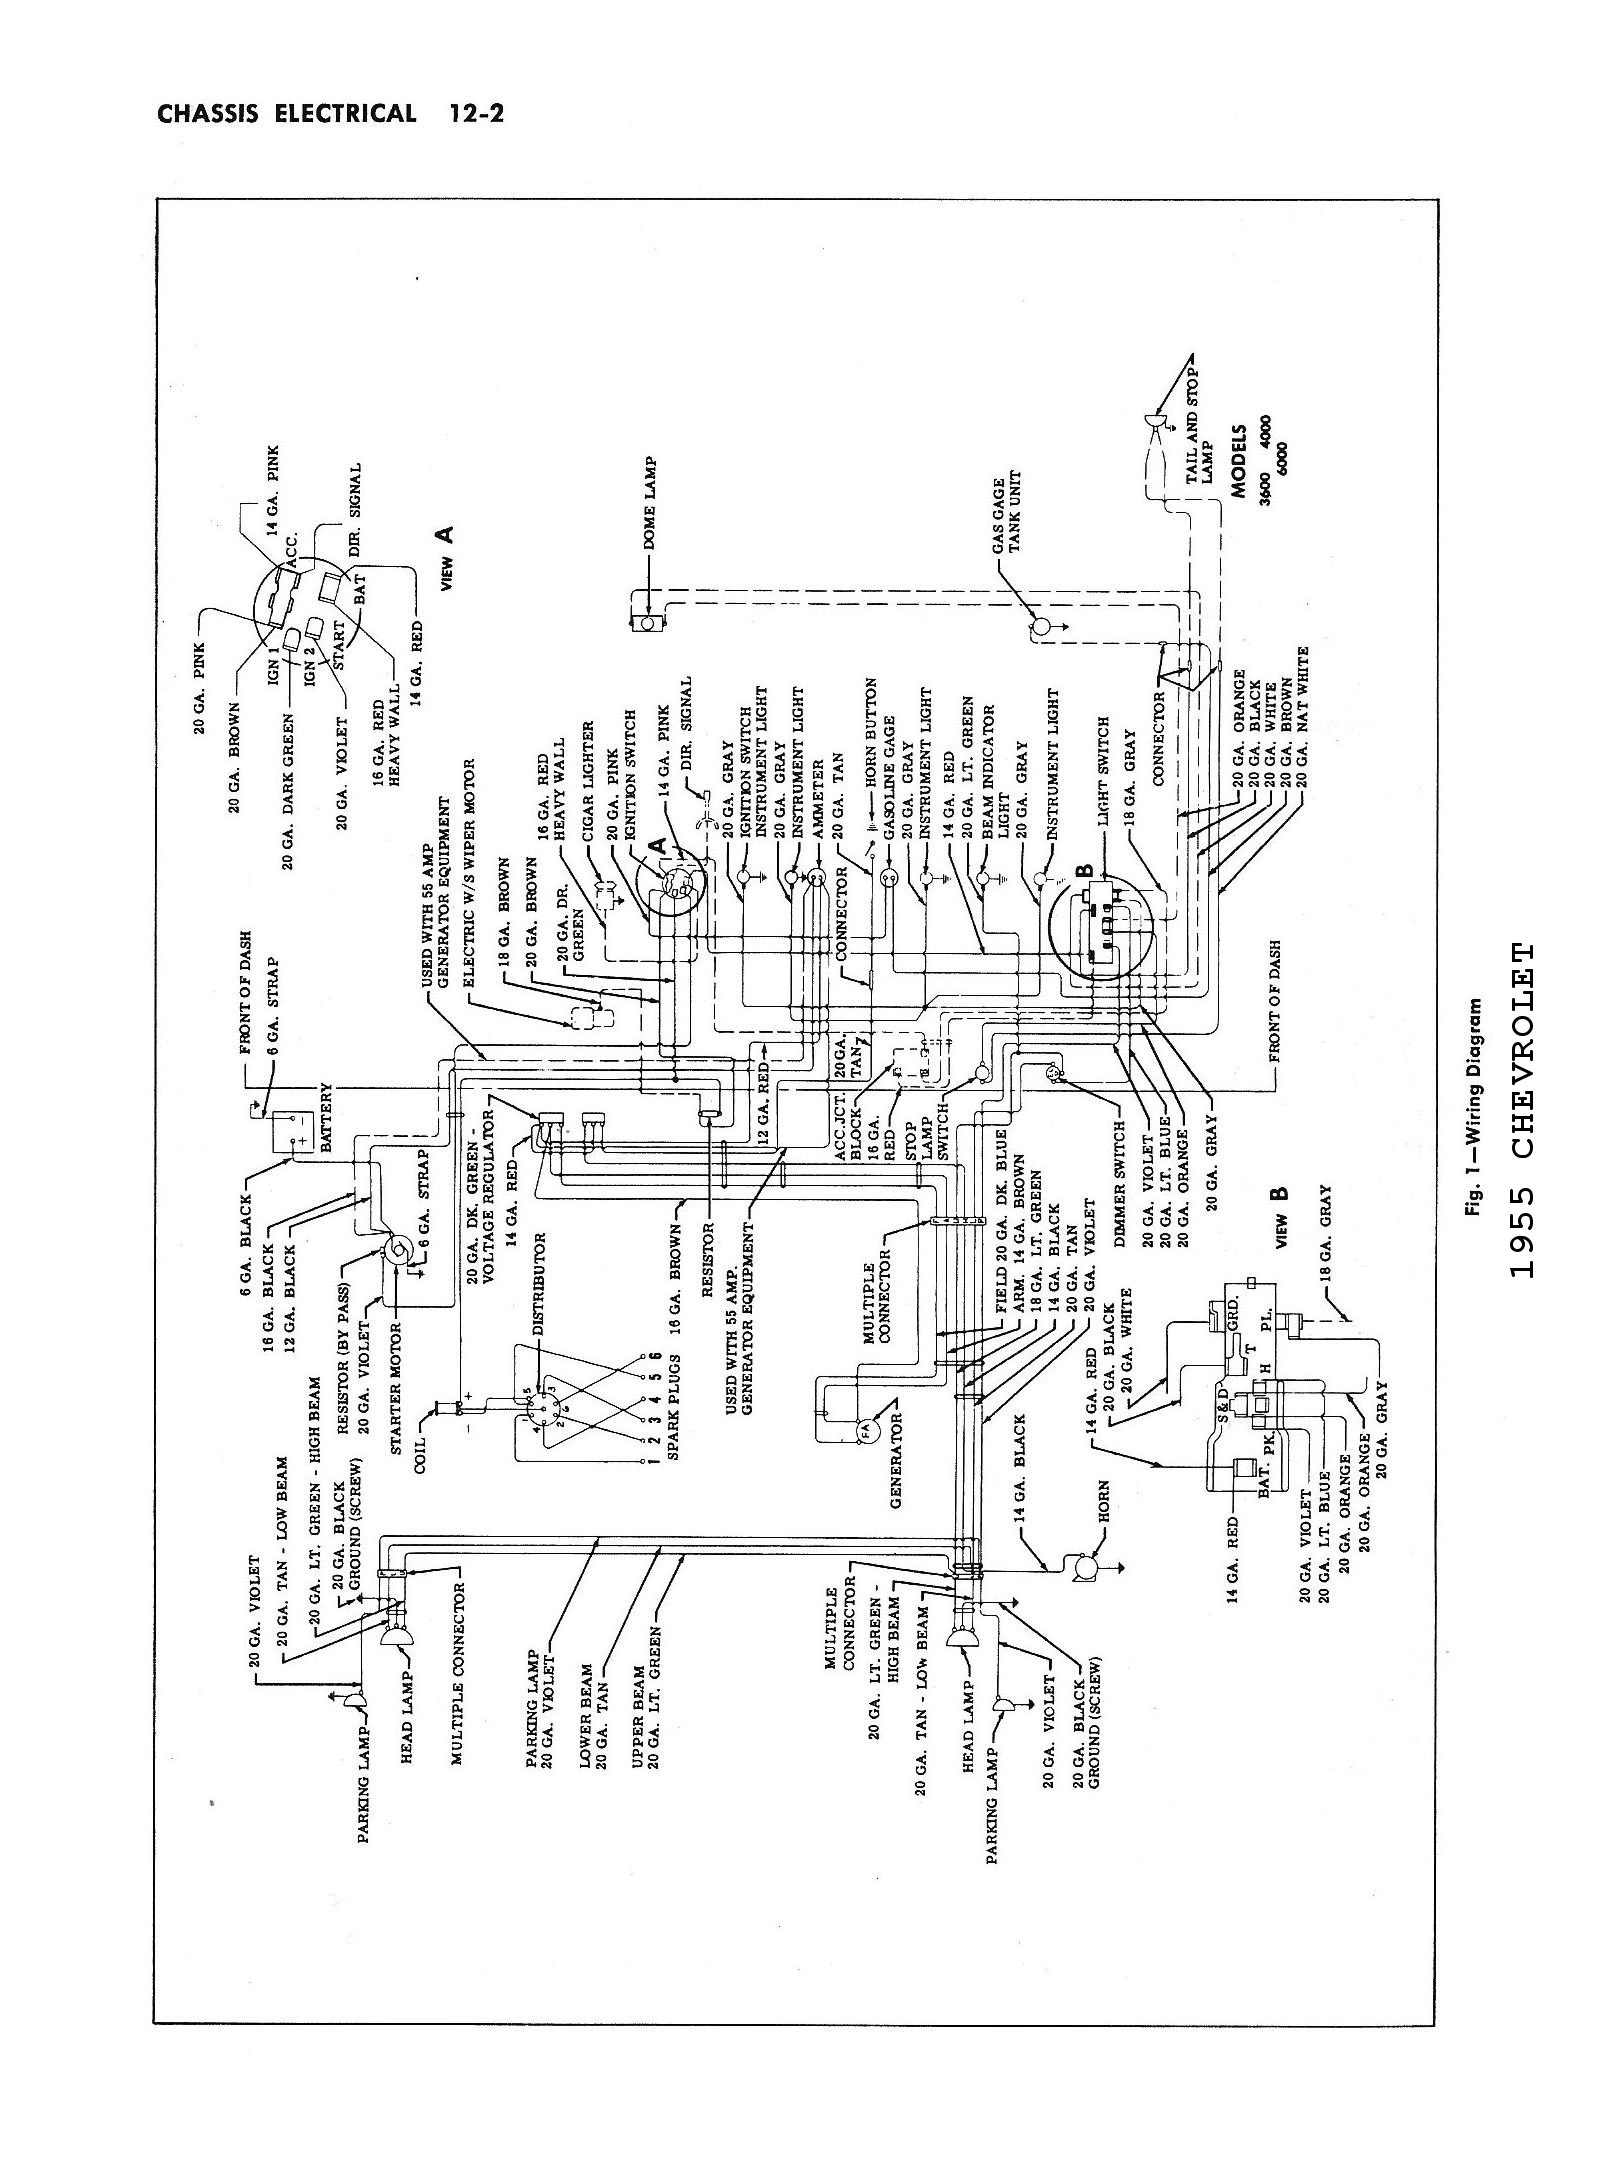 1955, 1955 Car Wiring Diagrams · 1955 Passenger Car Wiring · 1955 Truck  Wiring